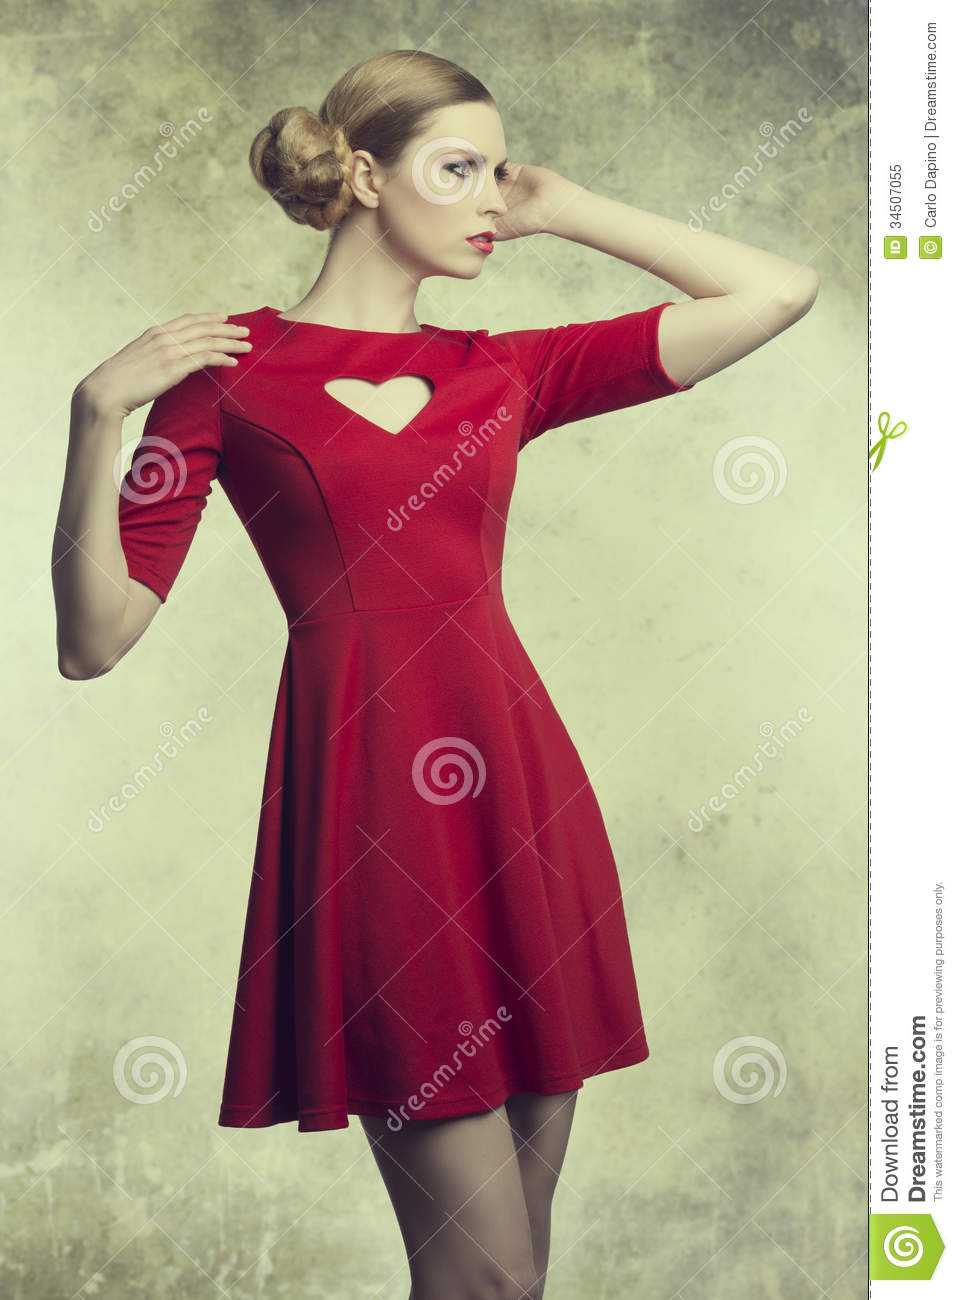 fashion girl with romantic style royalty free stock photo image 34507055